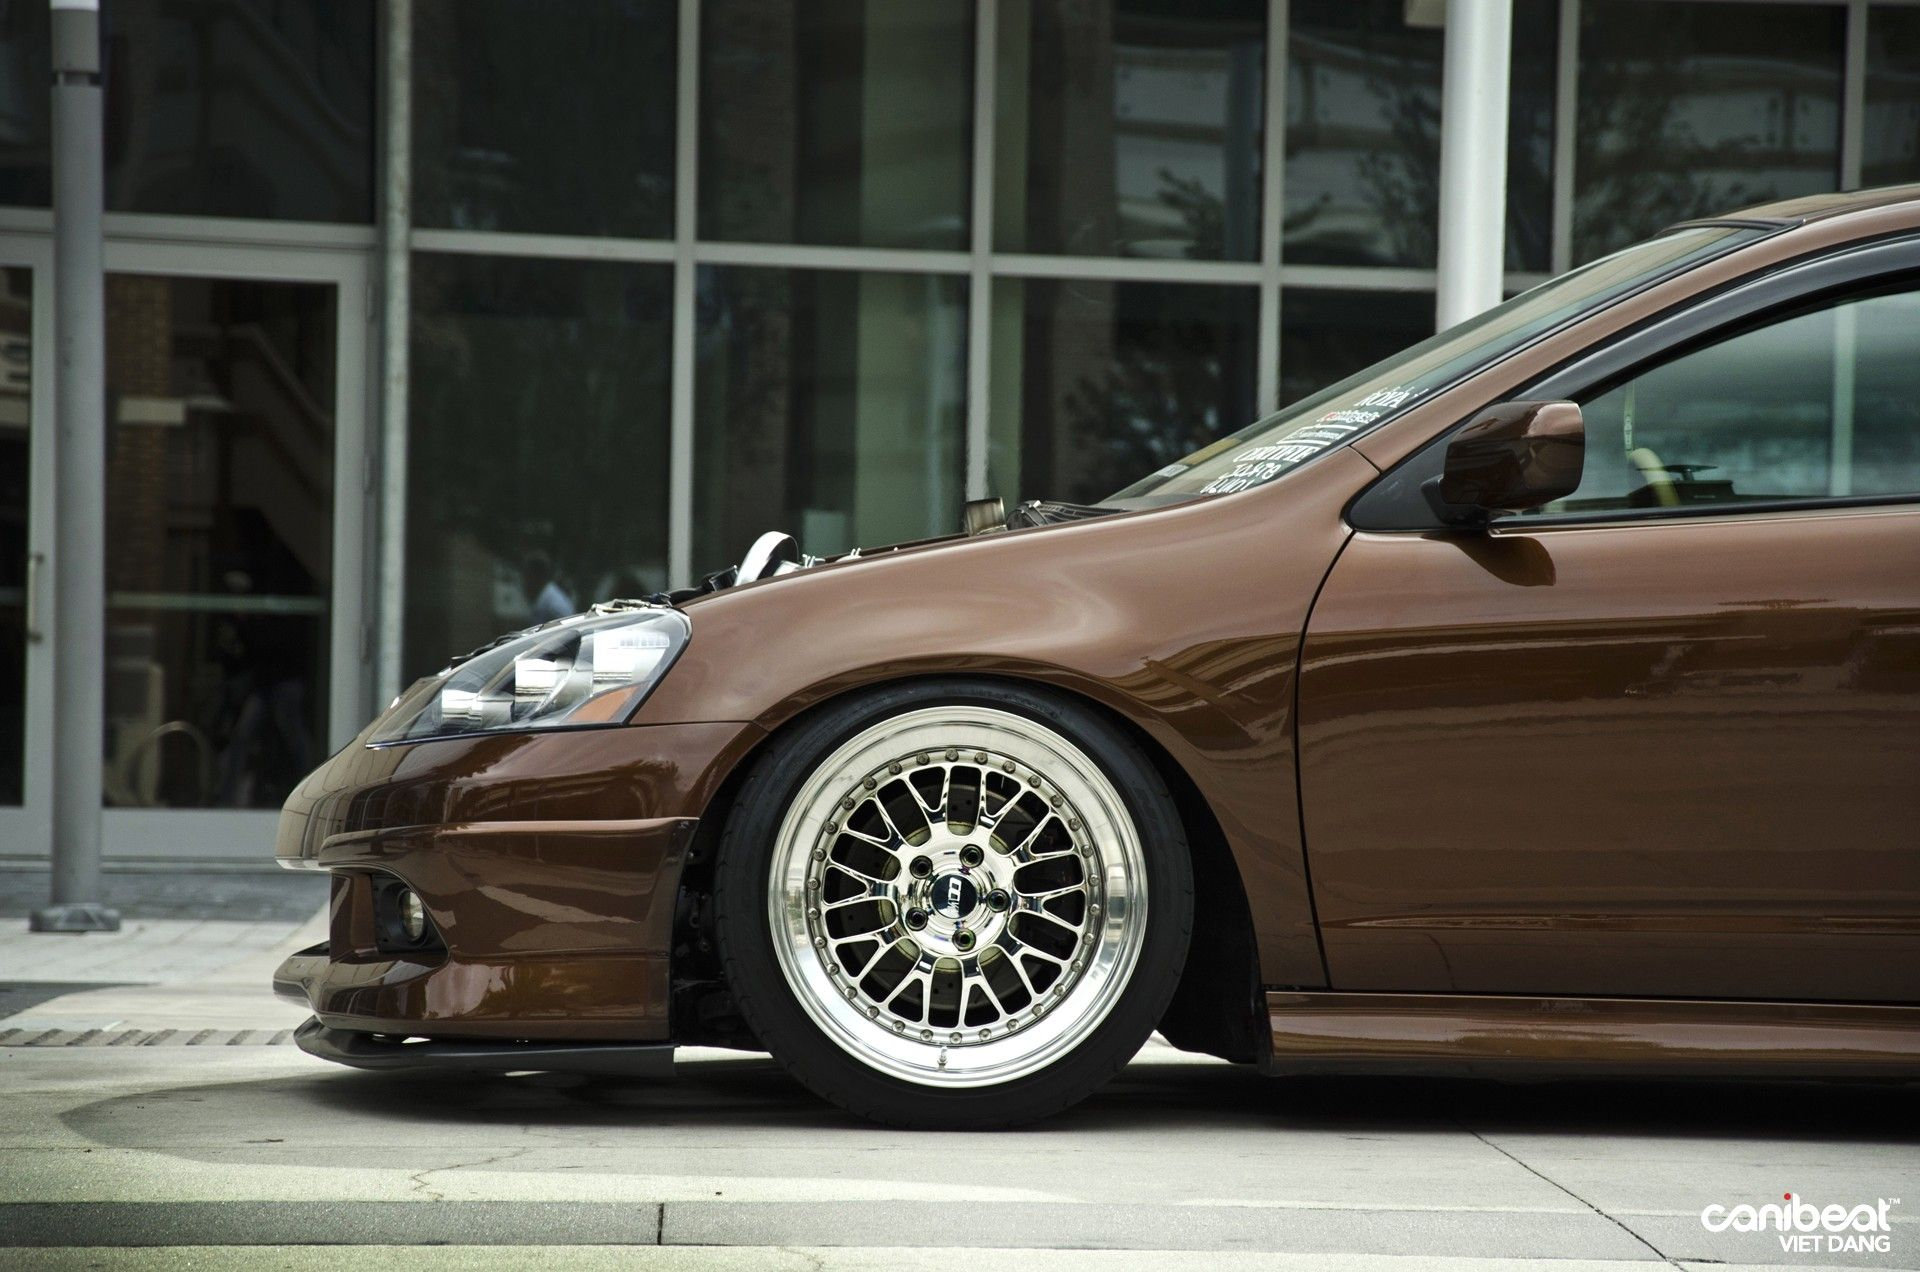 Gallery For Gt Acura Rsx Type S Wallpaper Acura Rsx Type S